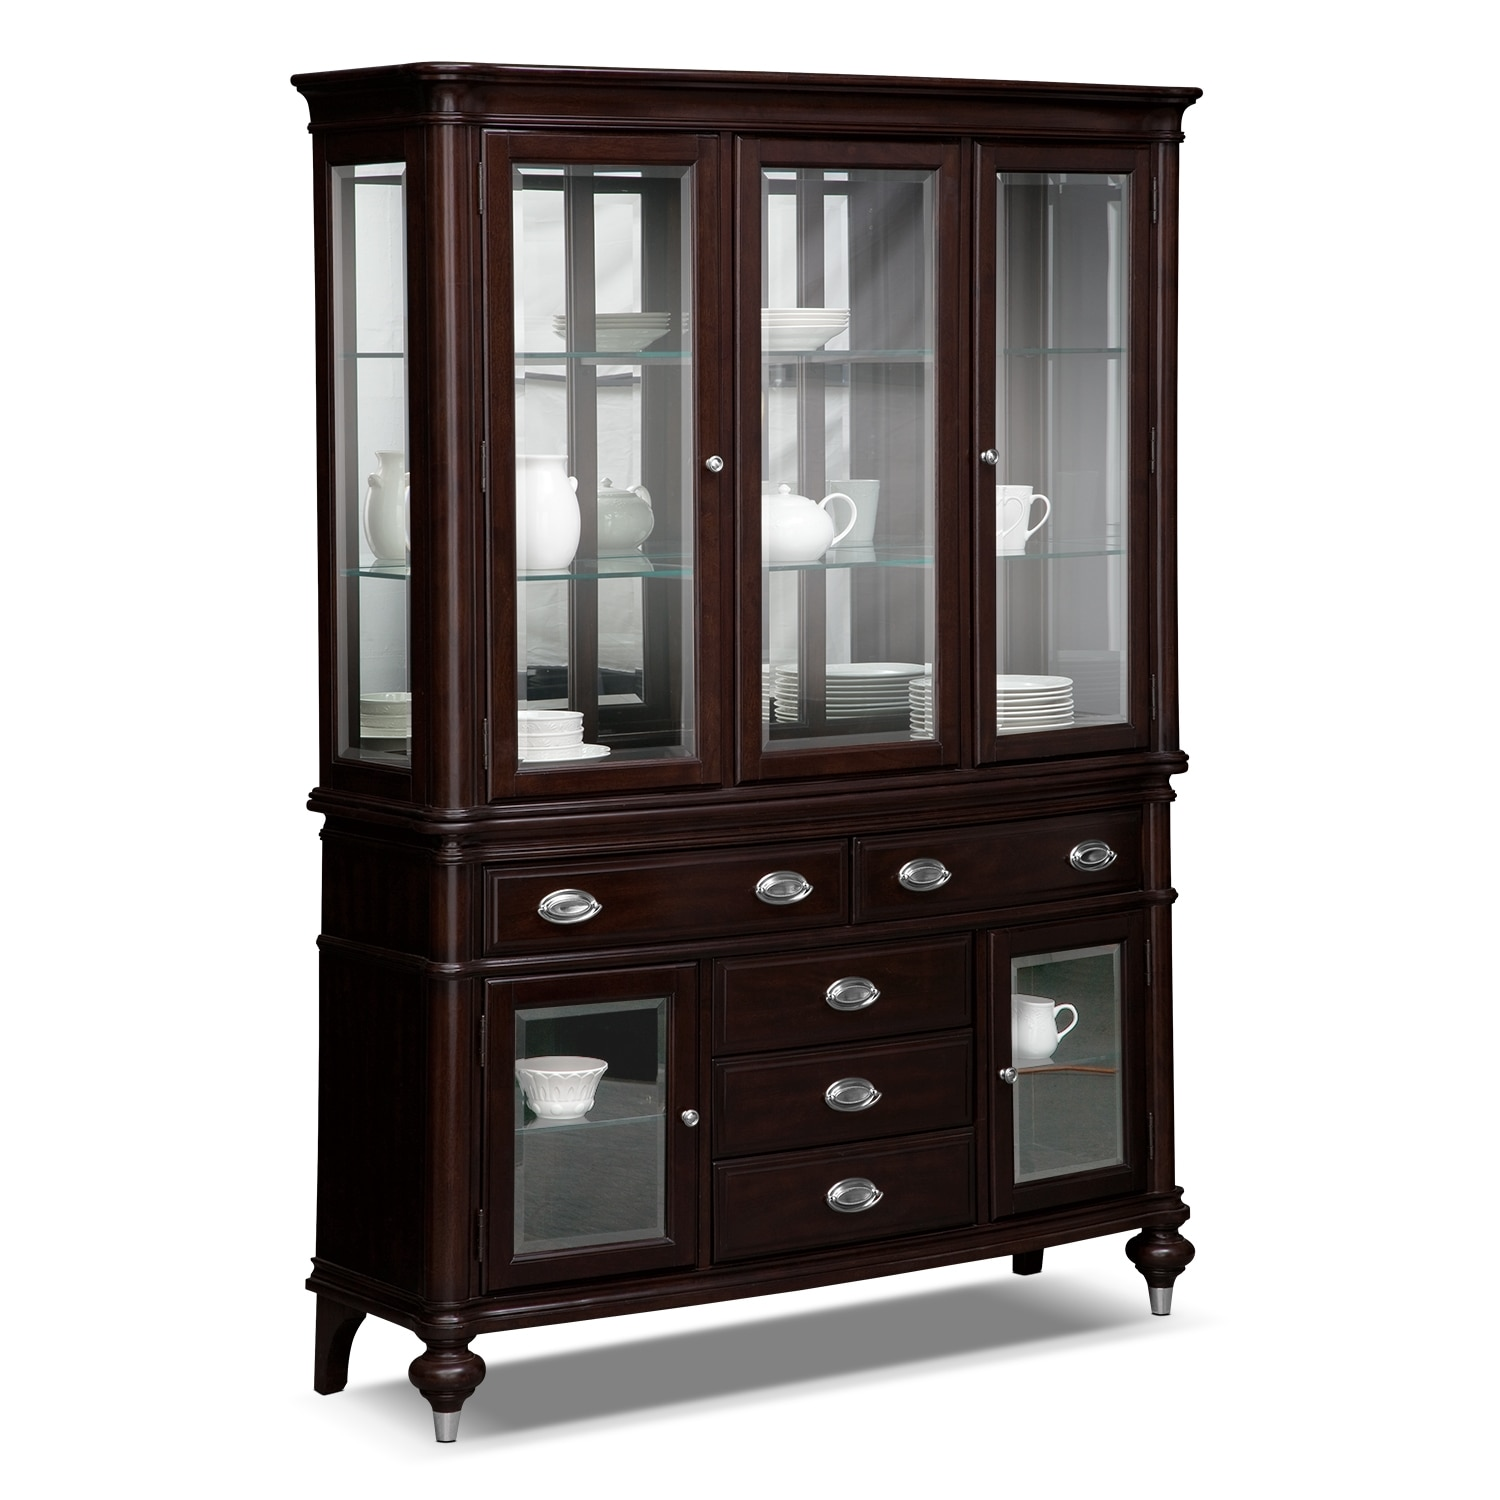 American Signature Furniture Esquire Dining Room Buffet